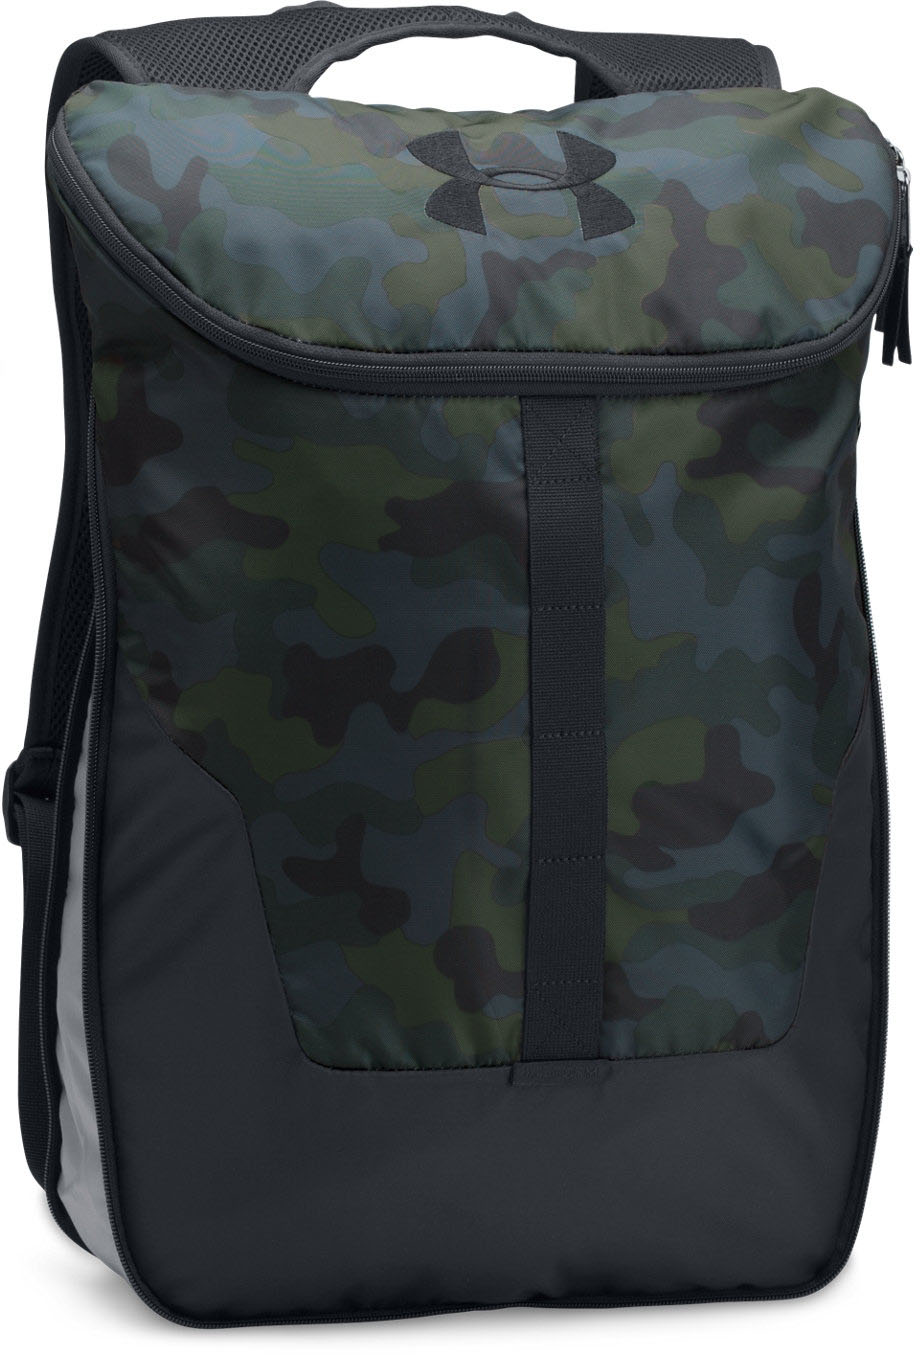 f3082c8d85 Under Armour - Unisex Expandable Sackpack